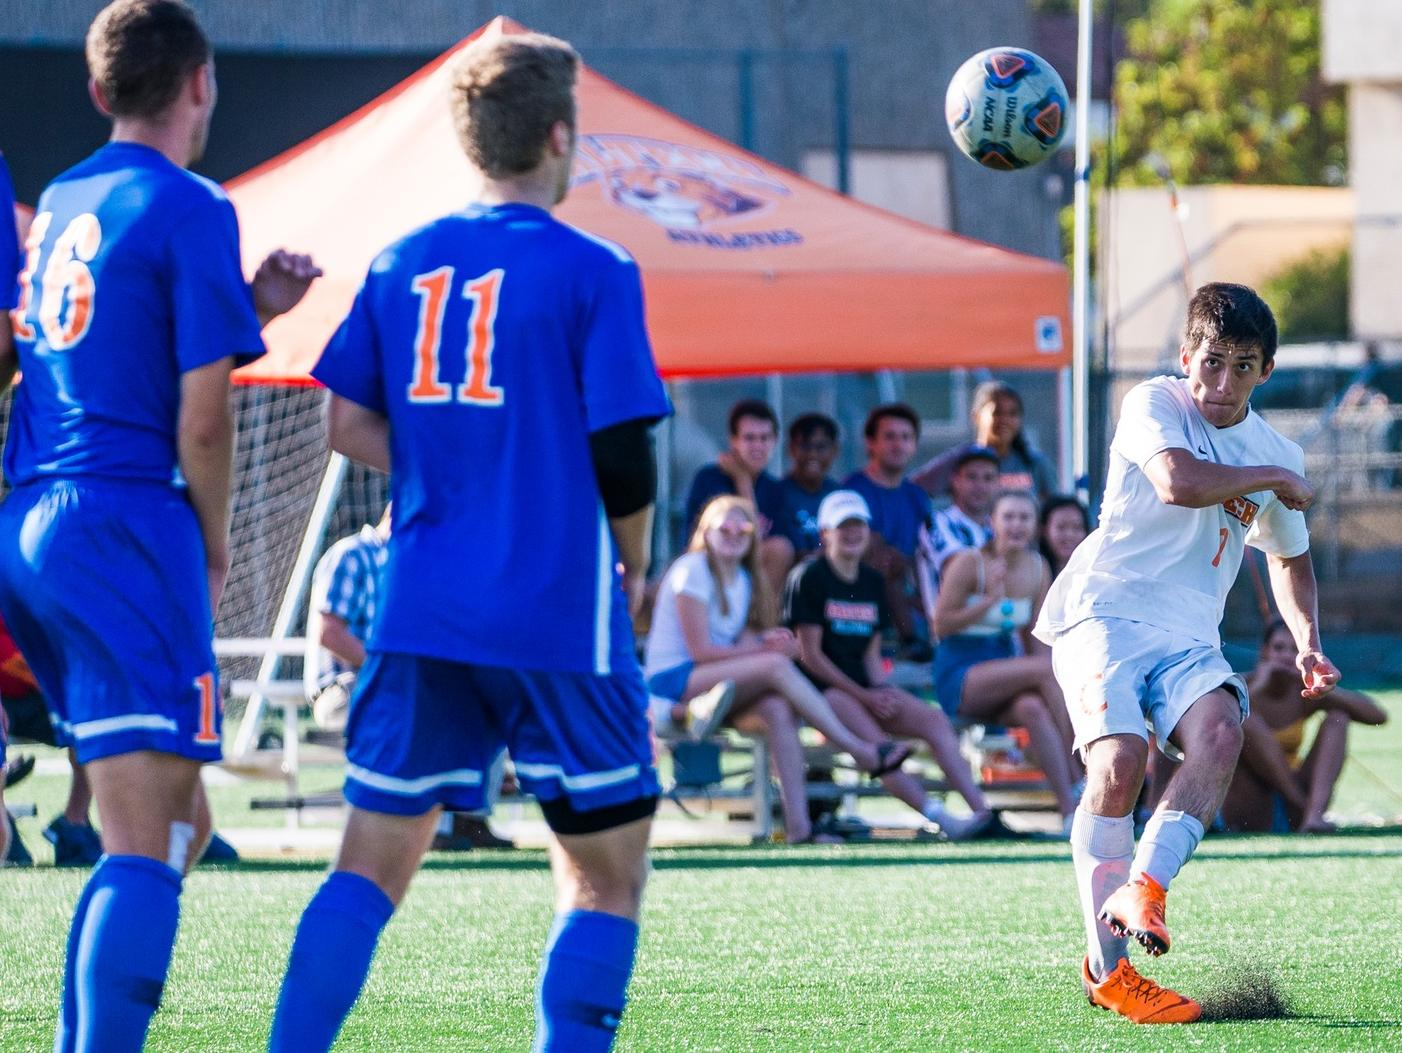 Beavers Bounce Back, Push Oxy at Home